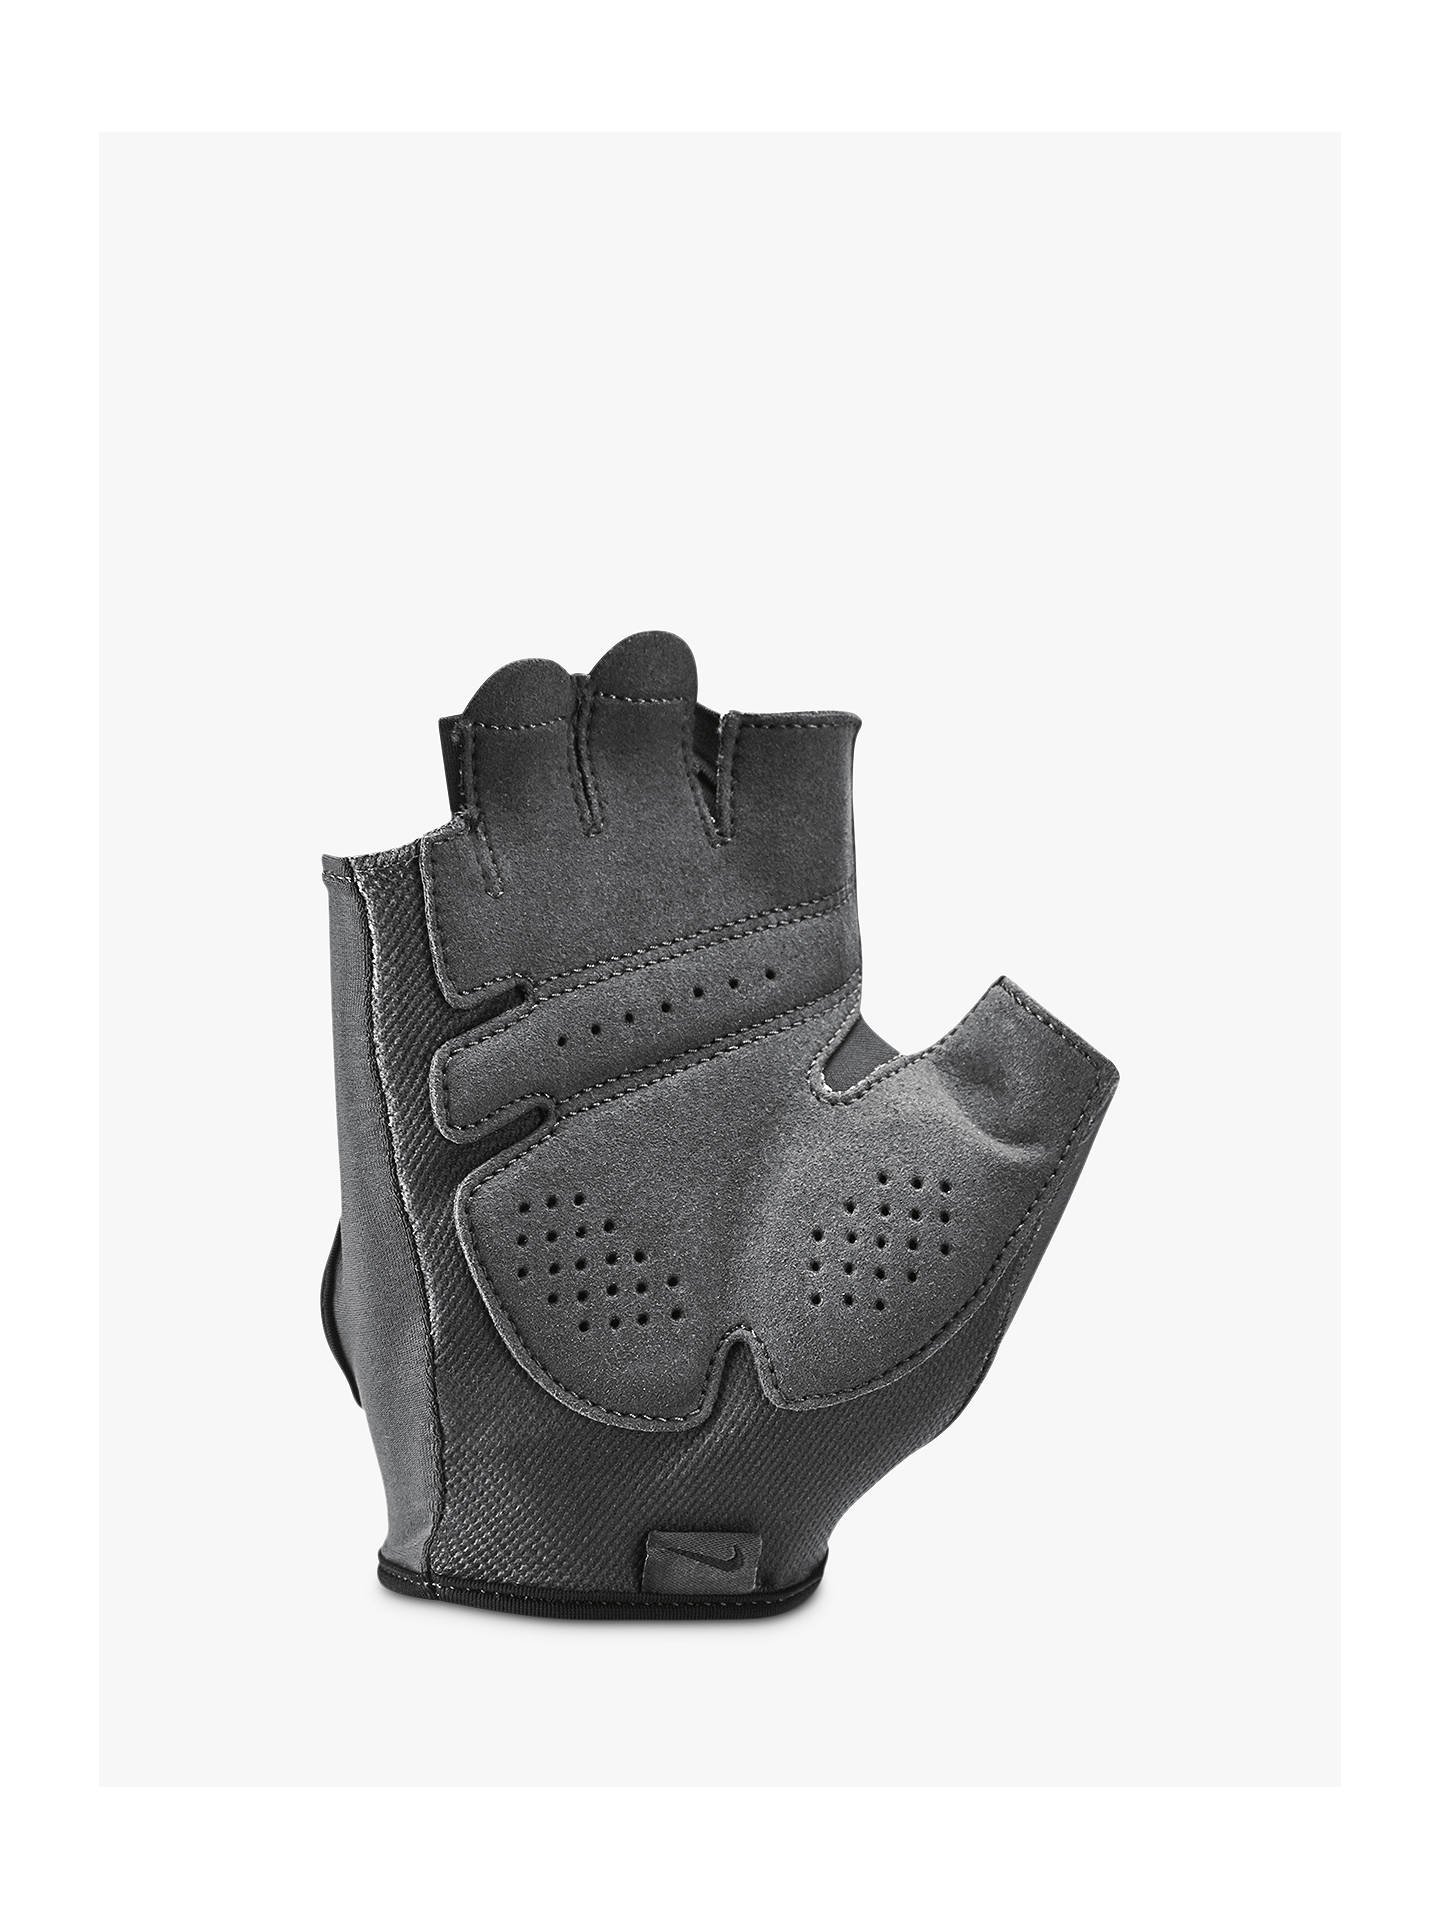 ce14a633b5 ... Buy Nike Gym Ultimate Women's Training Gloves, Anthracite/Black, M  Online at johnlewis